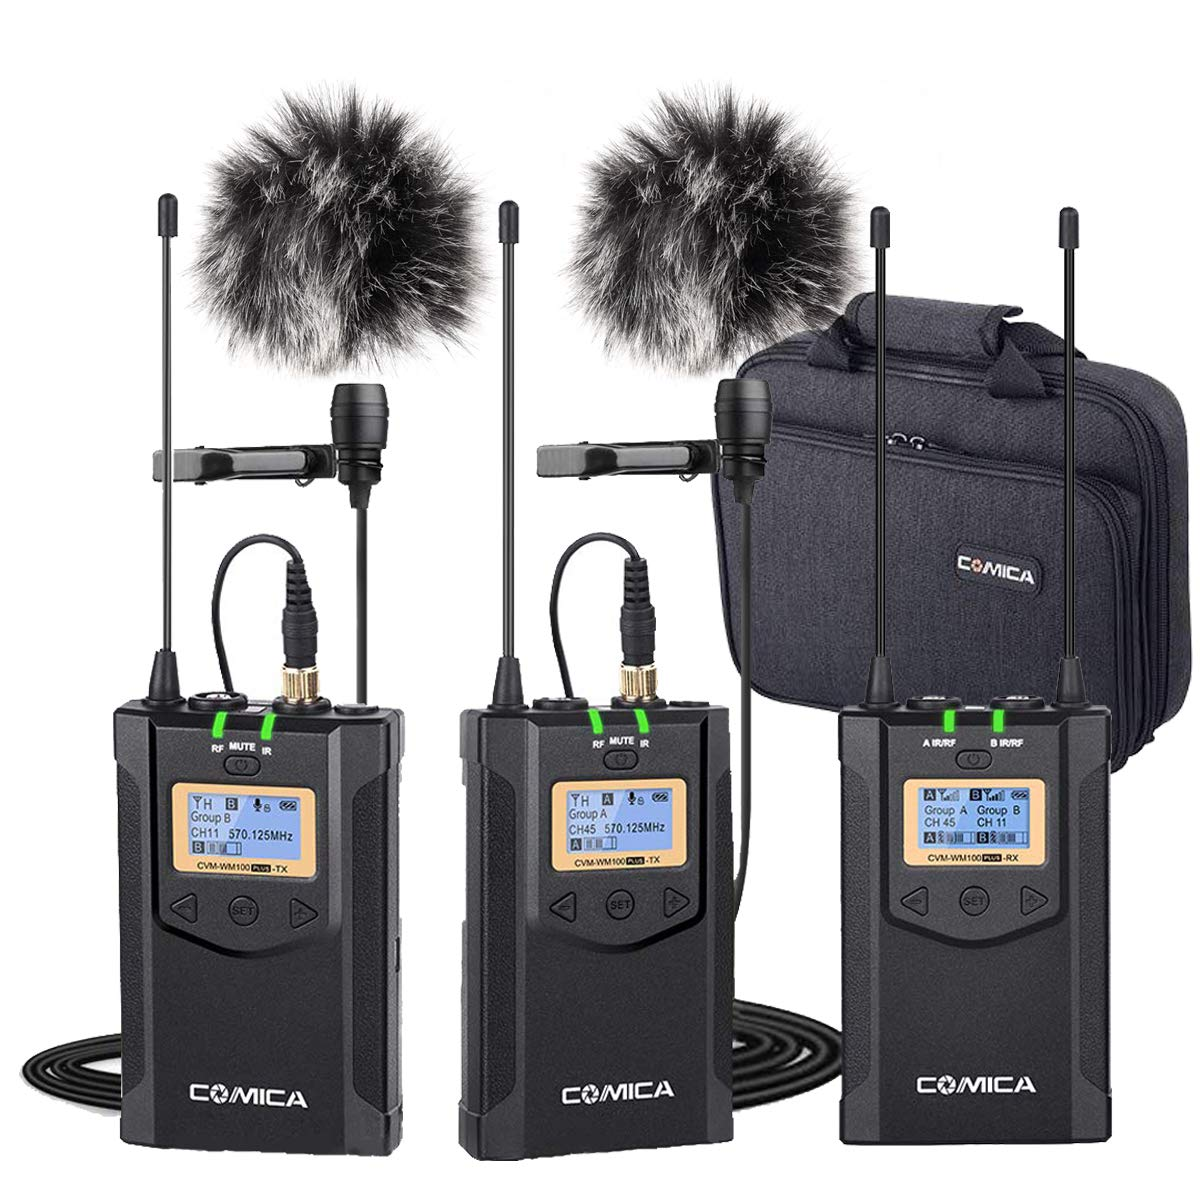 Wireless Lavalier Microphone System(2TX+1RX), Comica CVM-WM100 Plus UHF Dual Wireless Lapel Mic System for DSLR Canon Nikon Sony Panasonic Camcorder, Smarphone by Frunsi